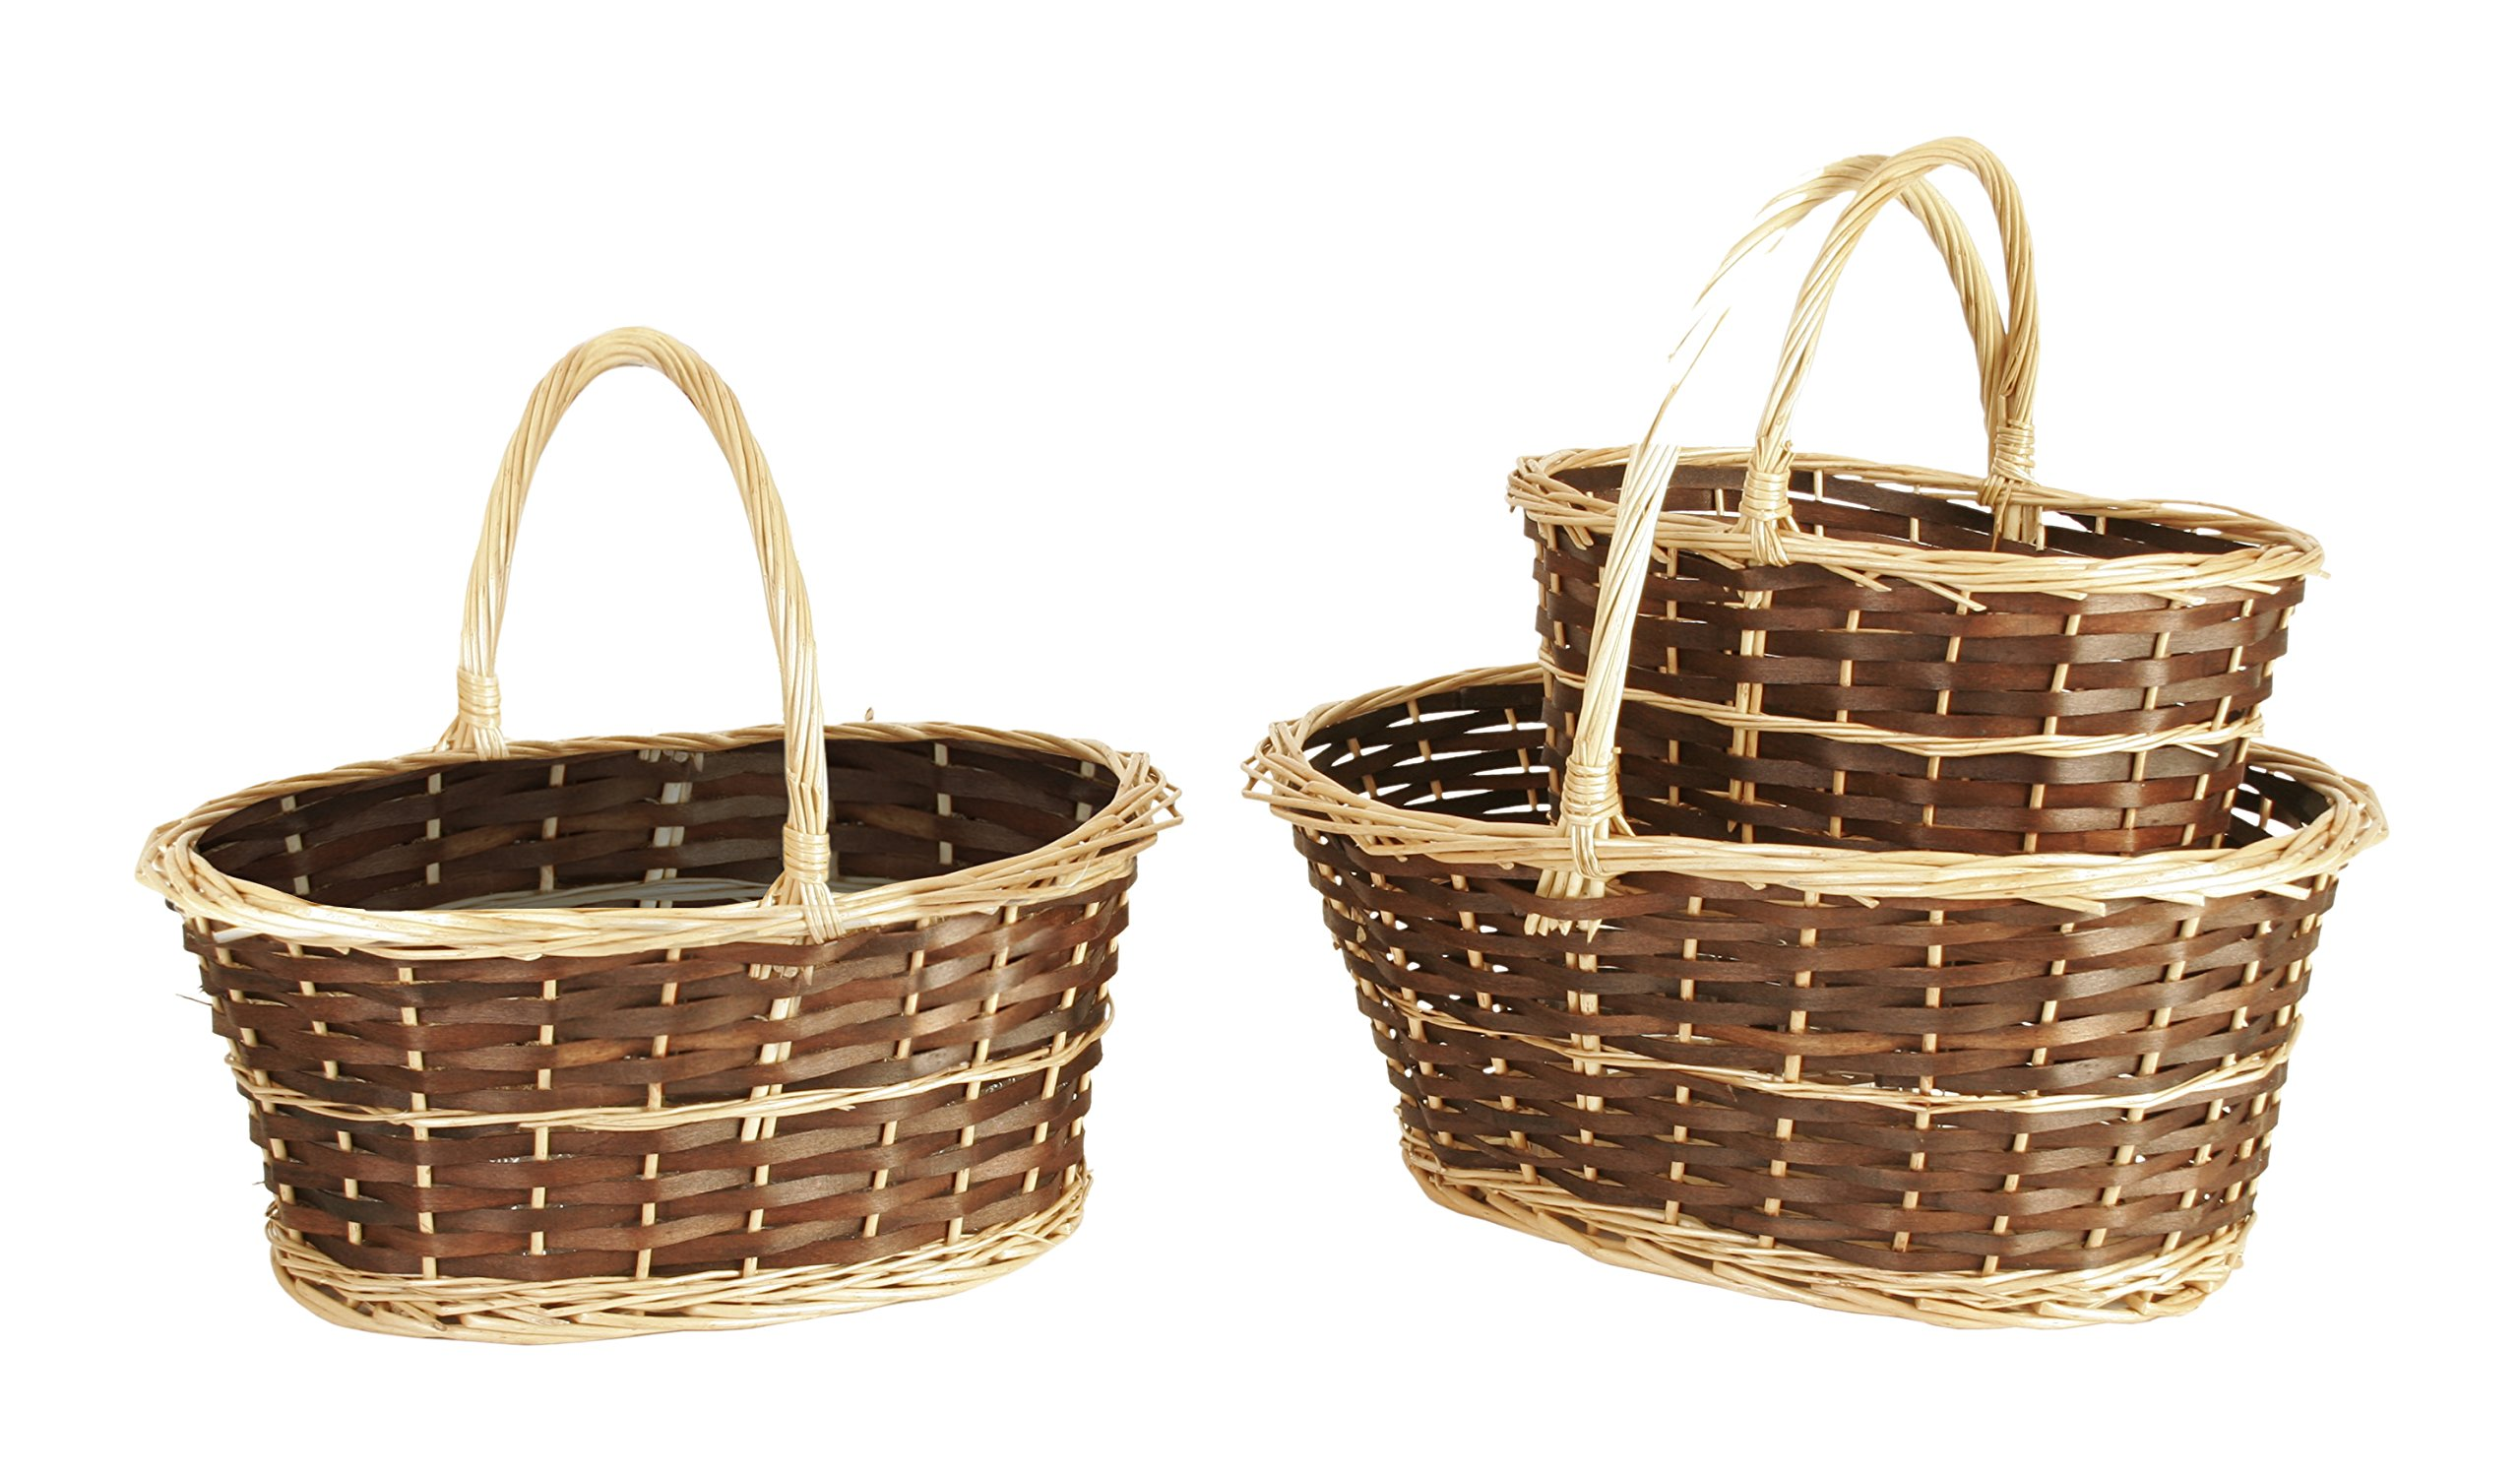 Wald Imports Brown & Beige Willow Decorative Nesting Storage Baskets, Set of 3 - Two-tone willow baskets, dark stained body with natural finish edging & handles Hand woven from natural materials Nested set of 3 baskets - living-room-decor, living-room, baskets-storage - 819aecAjuYL -